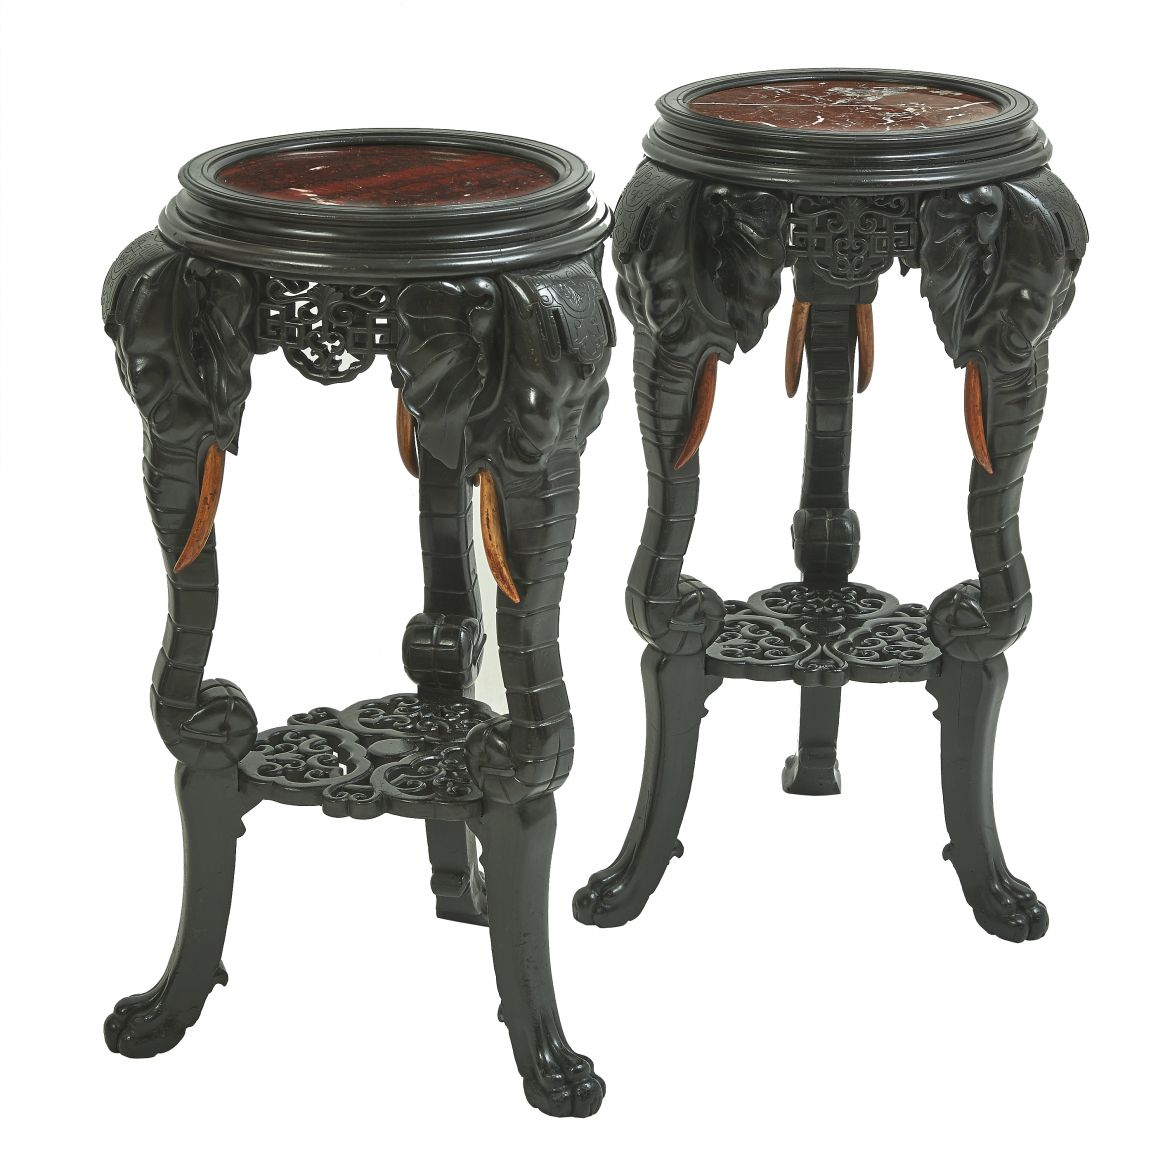 French Chinoiserie Carved Elephant Pedestals